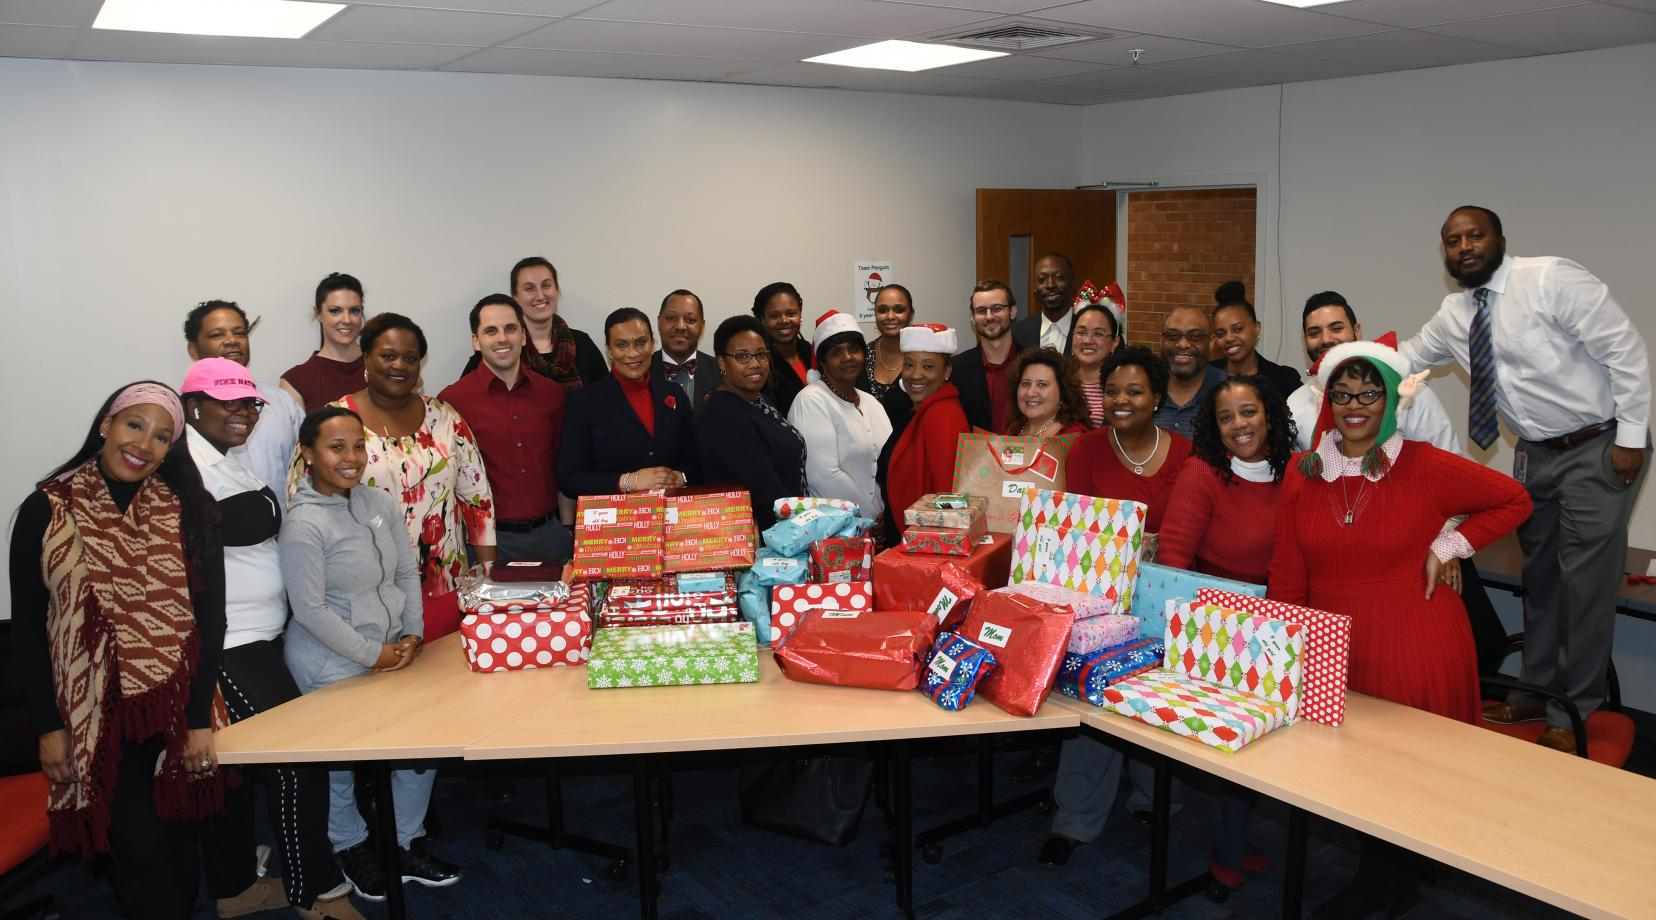 The Office of Student Success staff shows the fruits of their benevolence -- Christmas gifts for two disadvantaged families it has adopted for this holiday season.